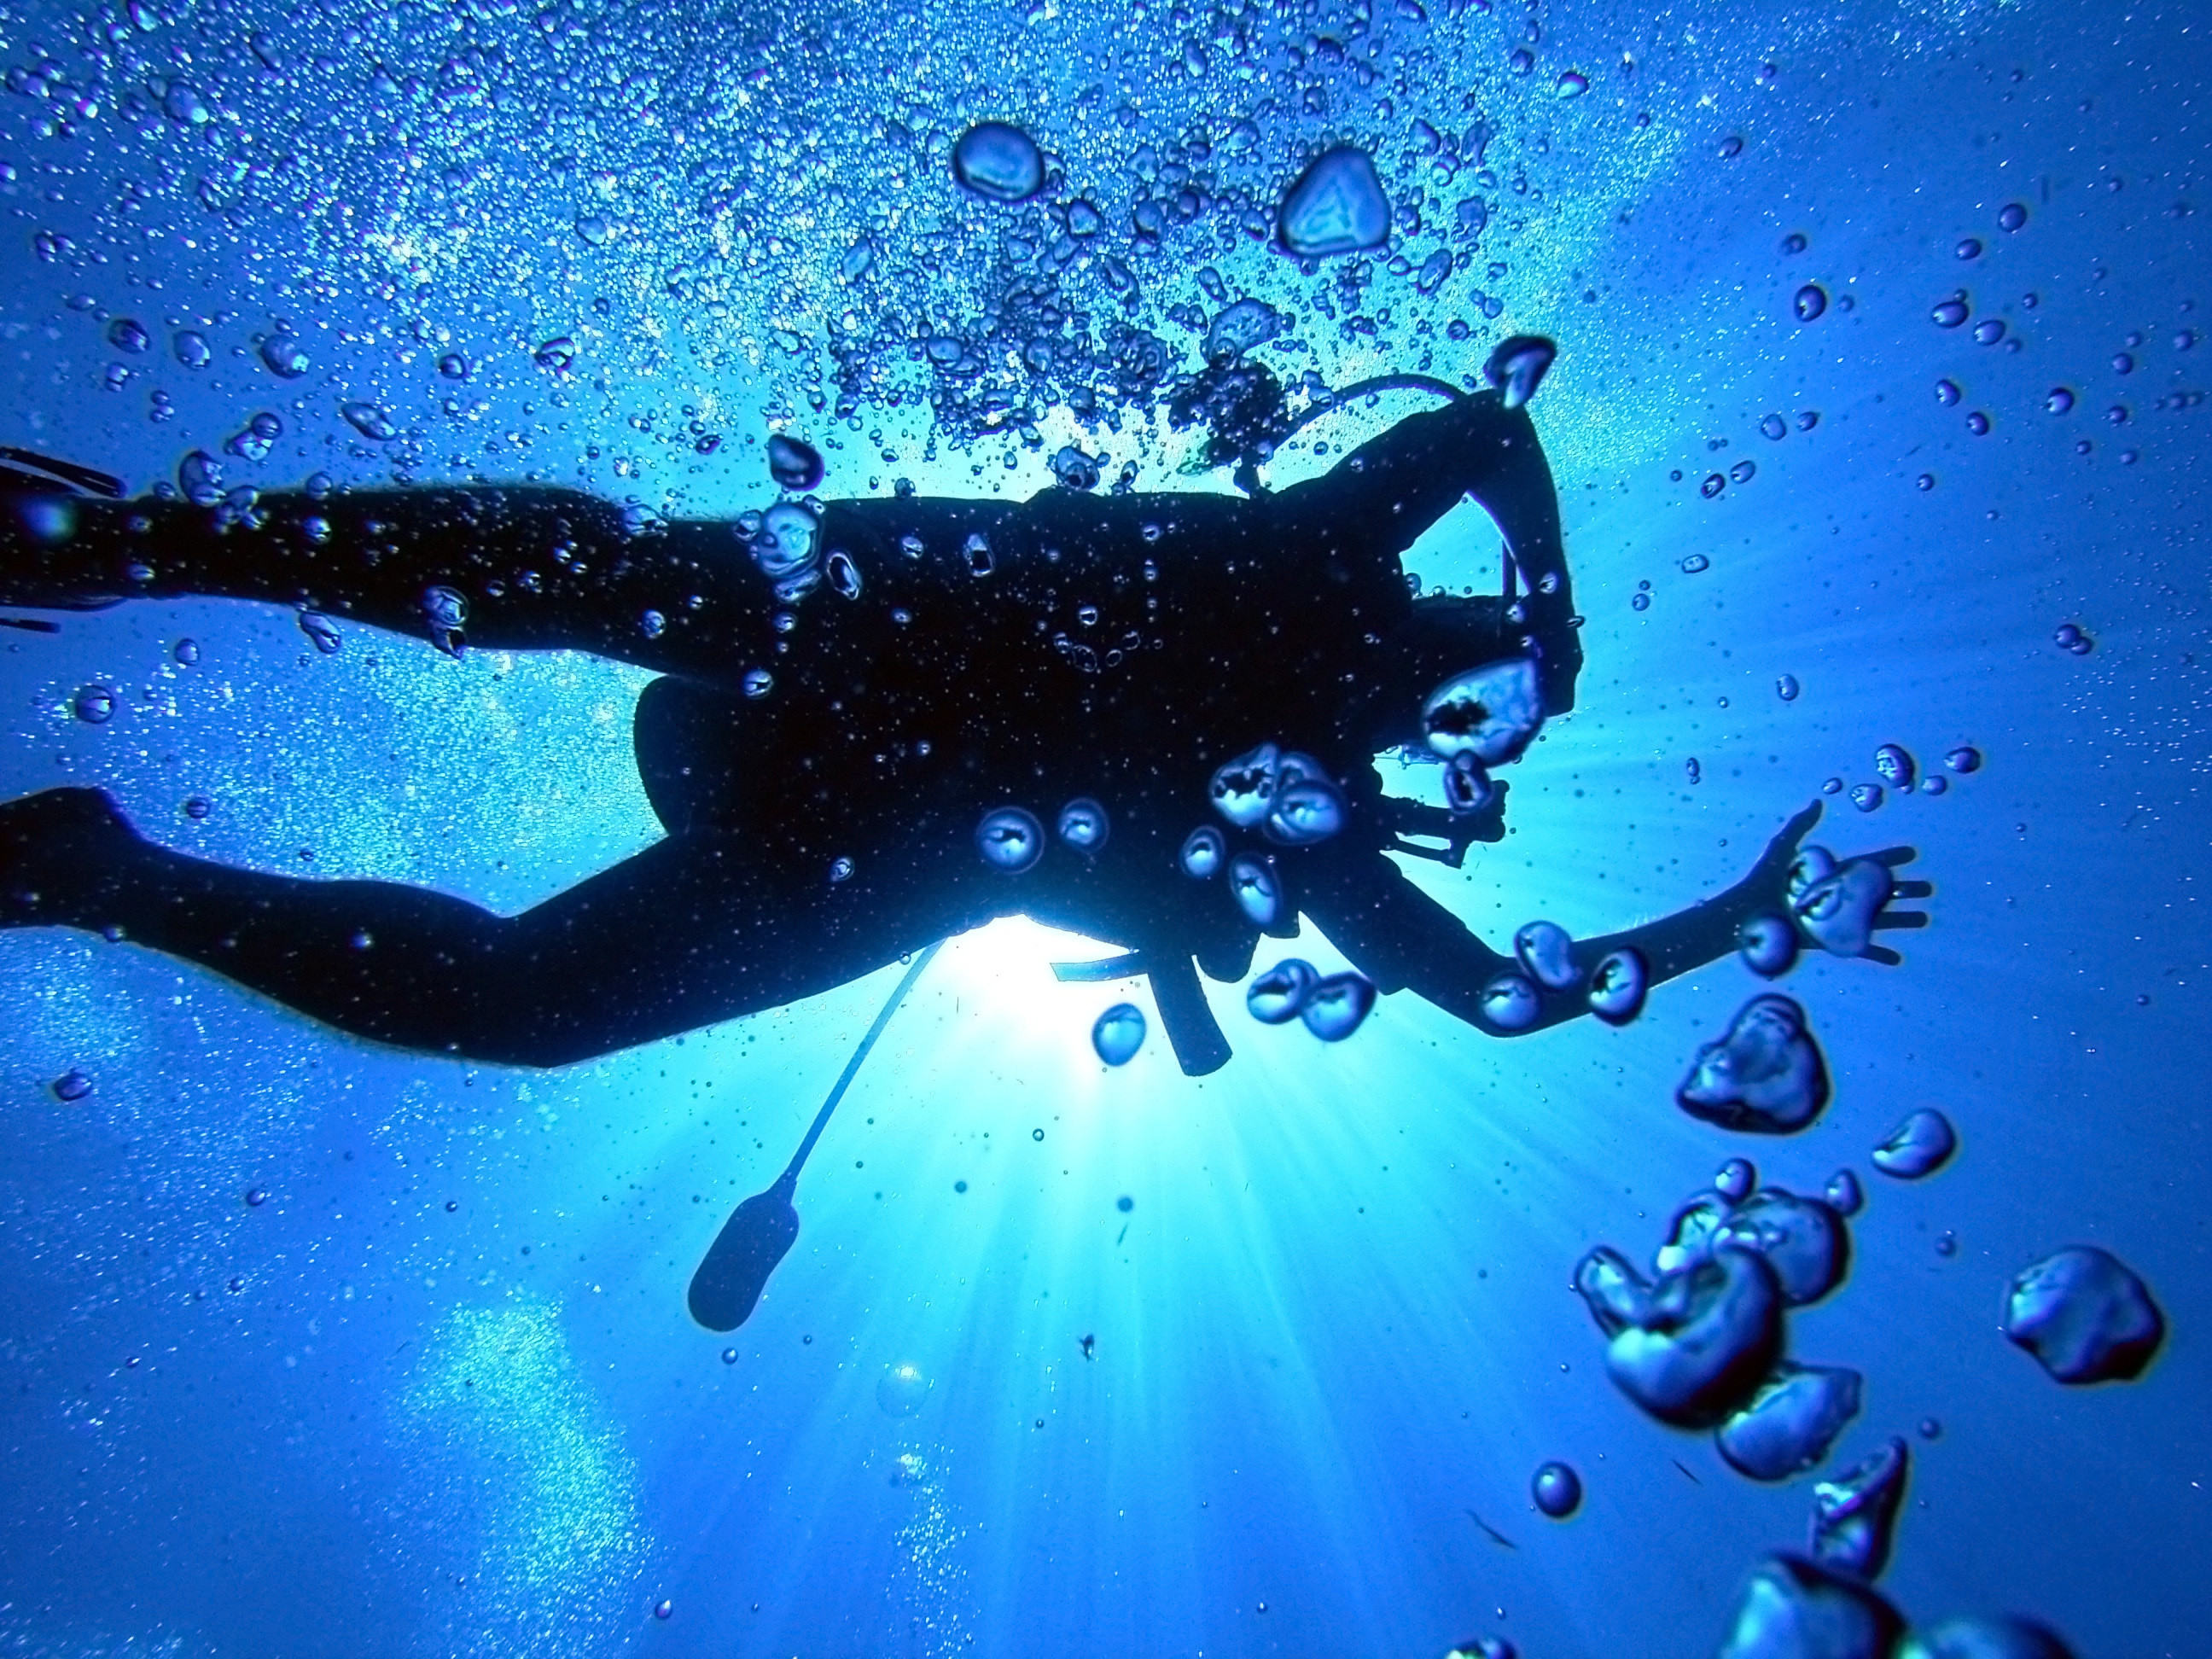 2592x1944 Scuba diving HD Wallpaper | Background Image |  | ID:165146 -  Wallpaper Abyss